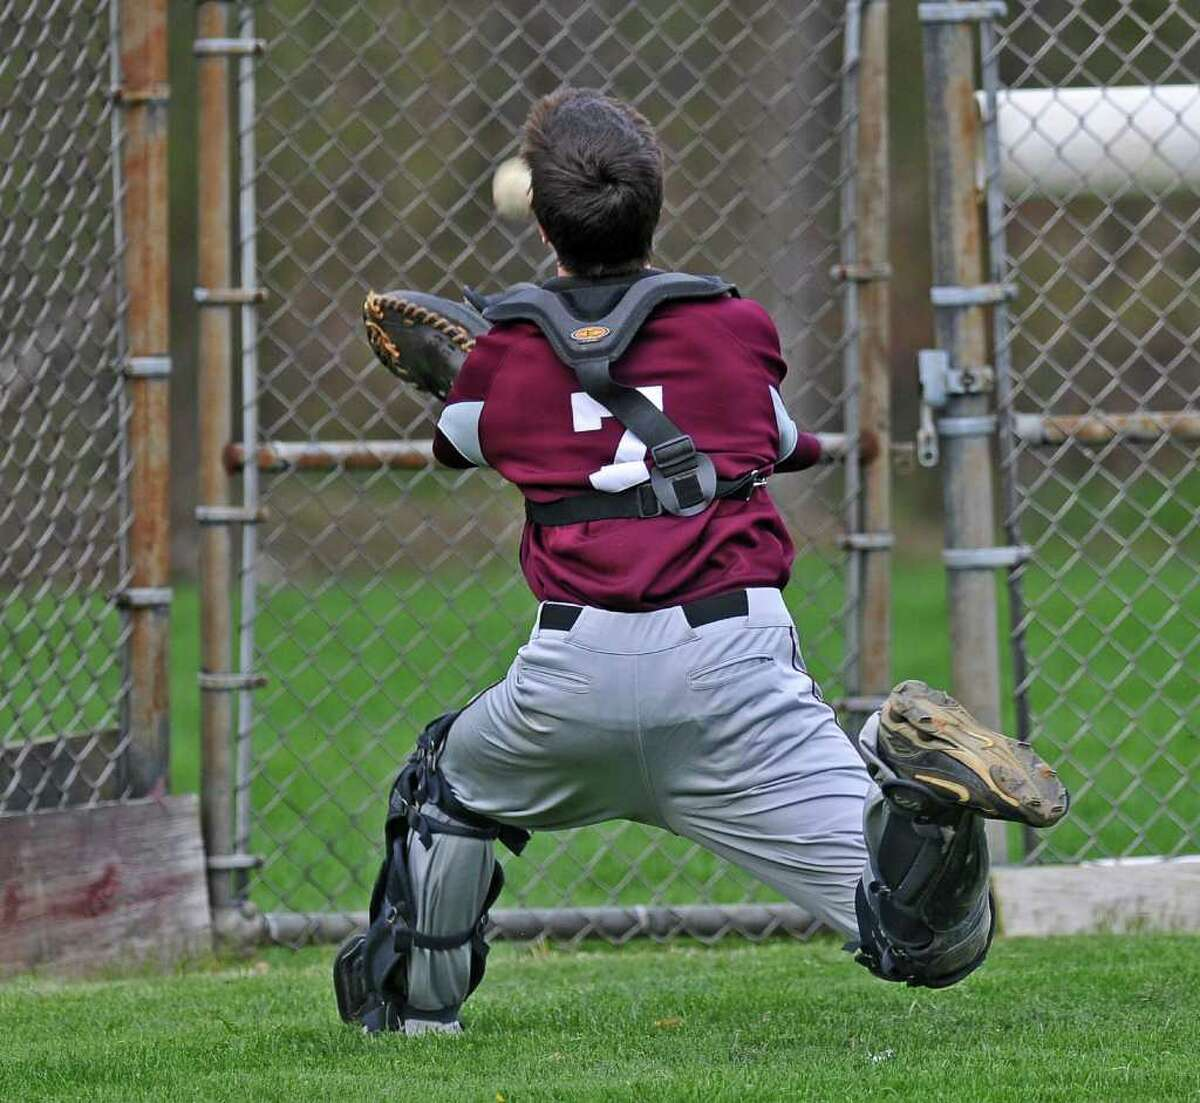 Burnt Hills catcher Dave Russell dives to catch a foul pop behind home plate near the fence during a game against Averill Park on Monday May 2, 2011 in Burnt Hills, NY. ( Philip Kamrass / Times Union )